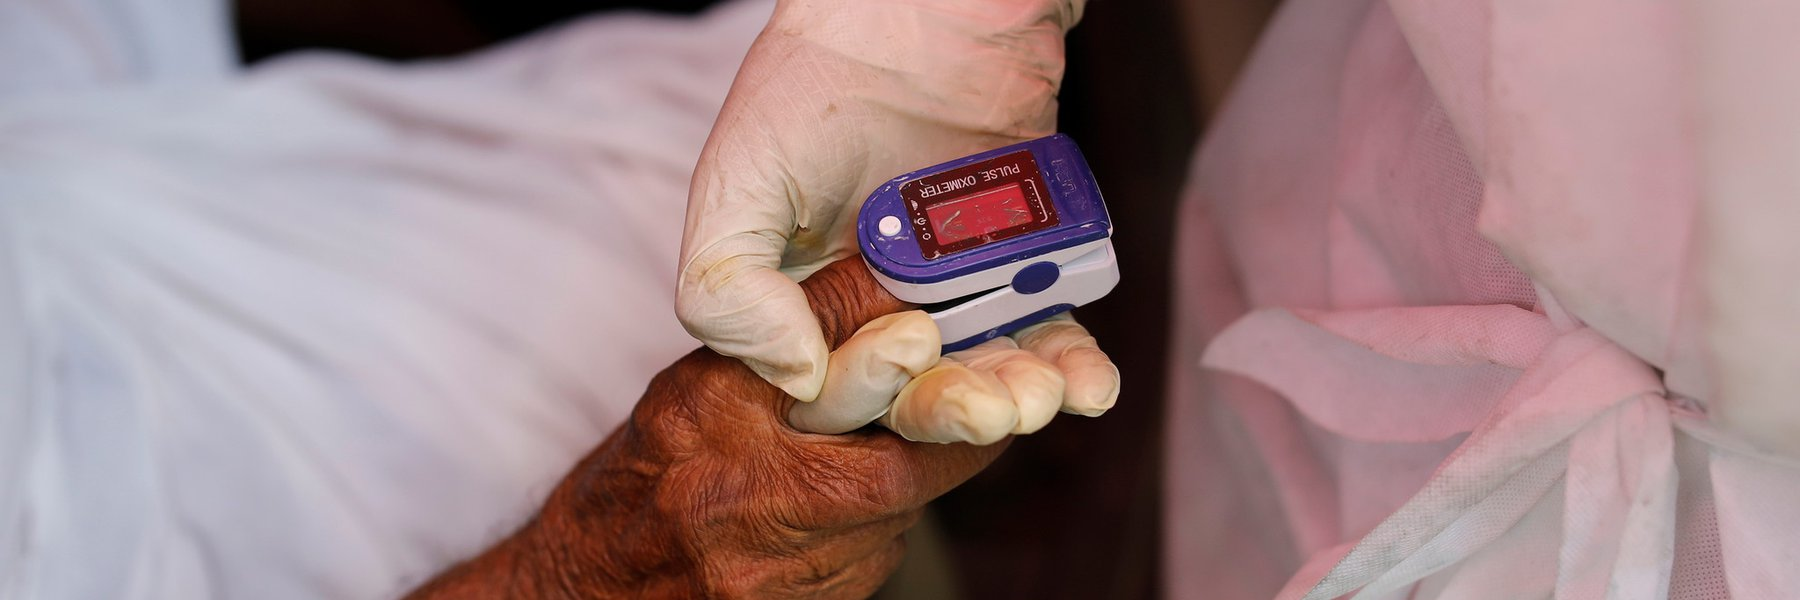 A volunteer's hand holds the hand of someone with Covid - their finger has an oxygen monitor on it